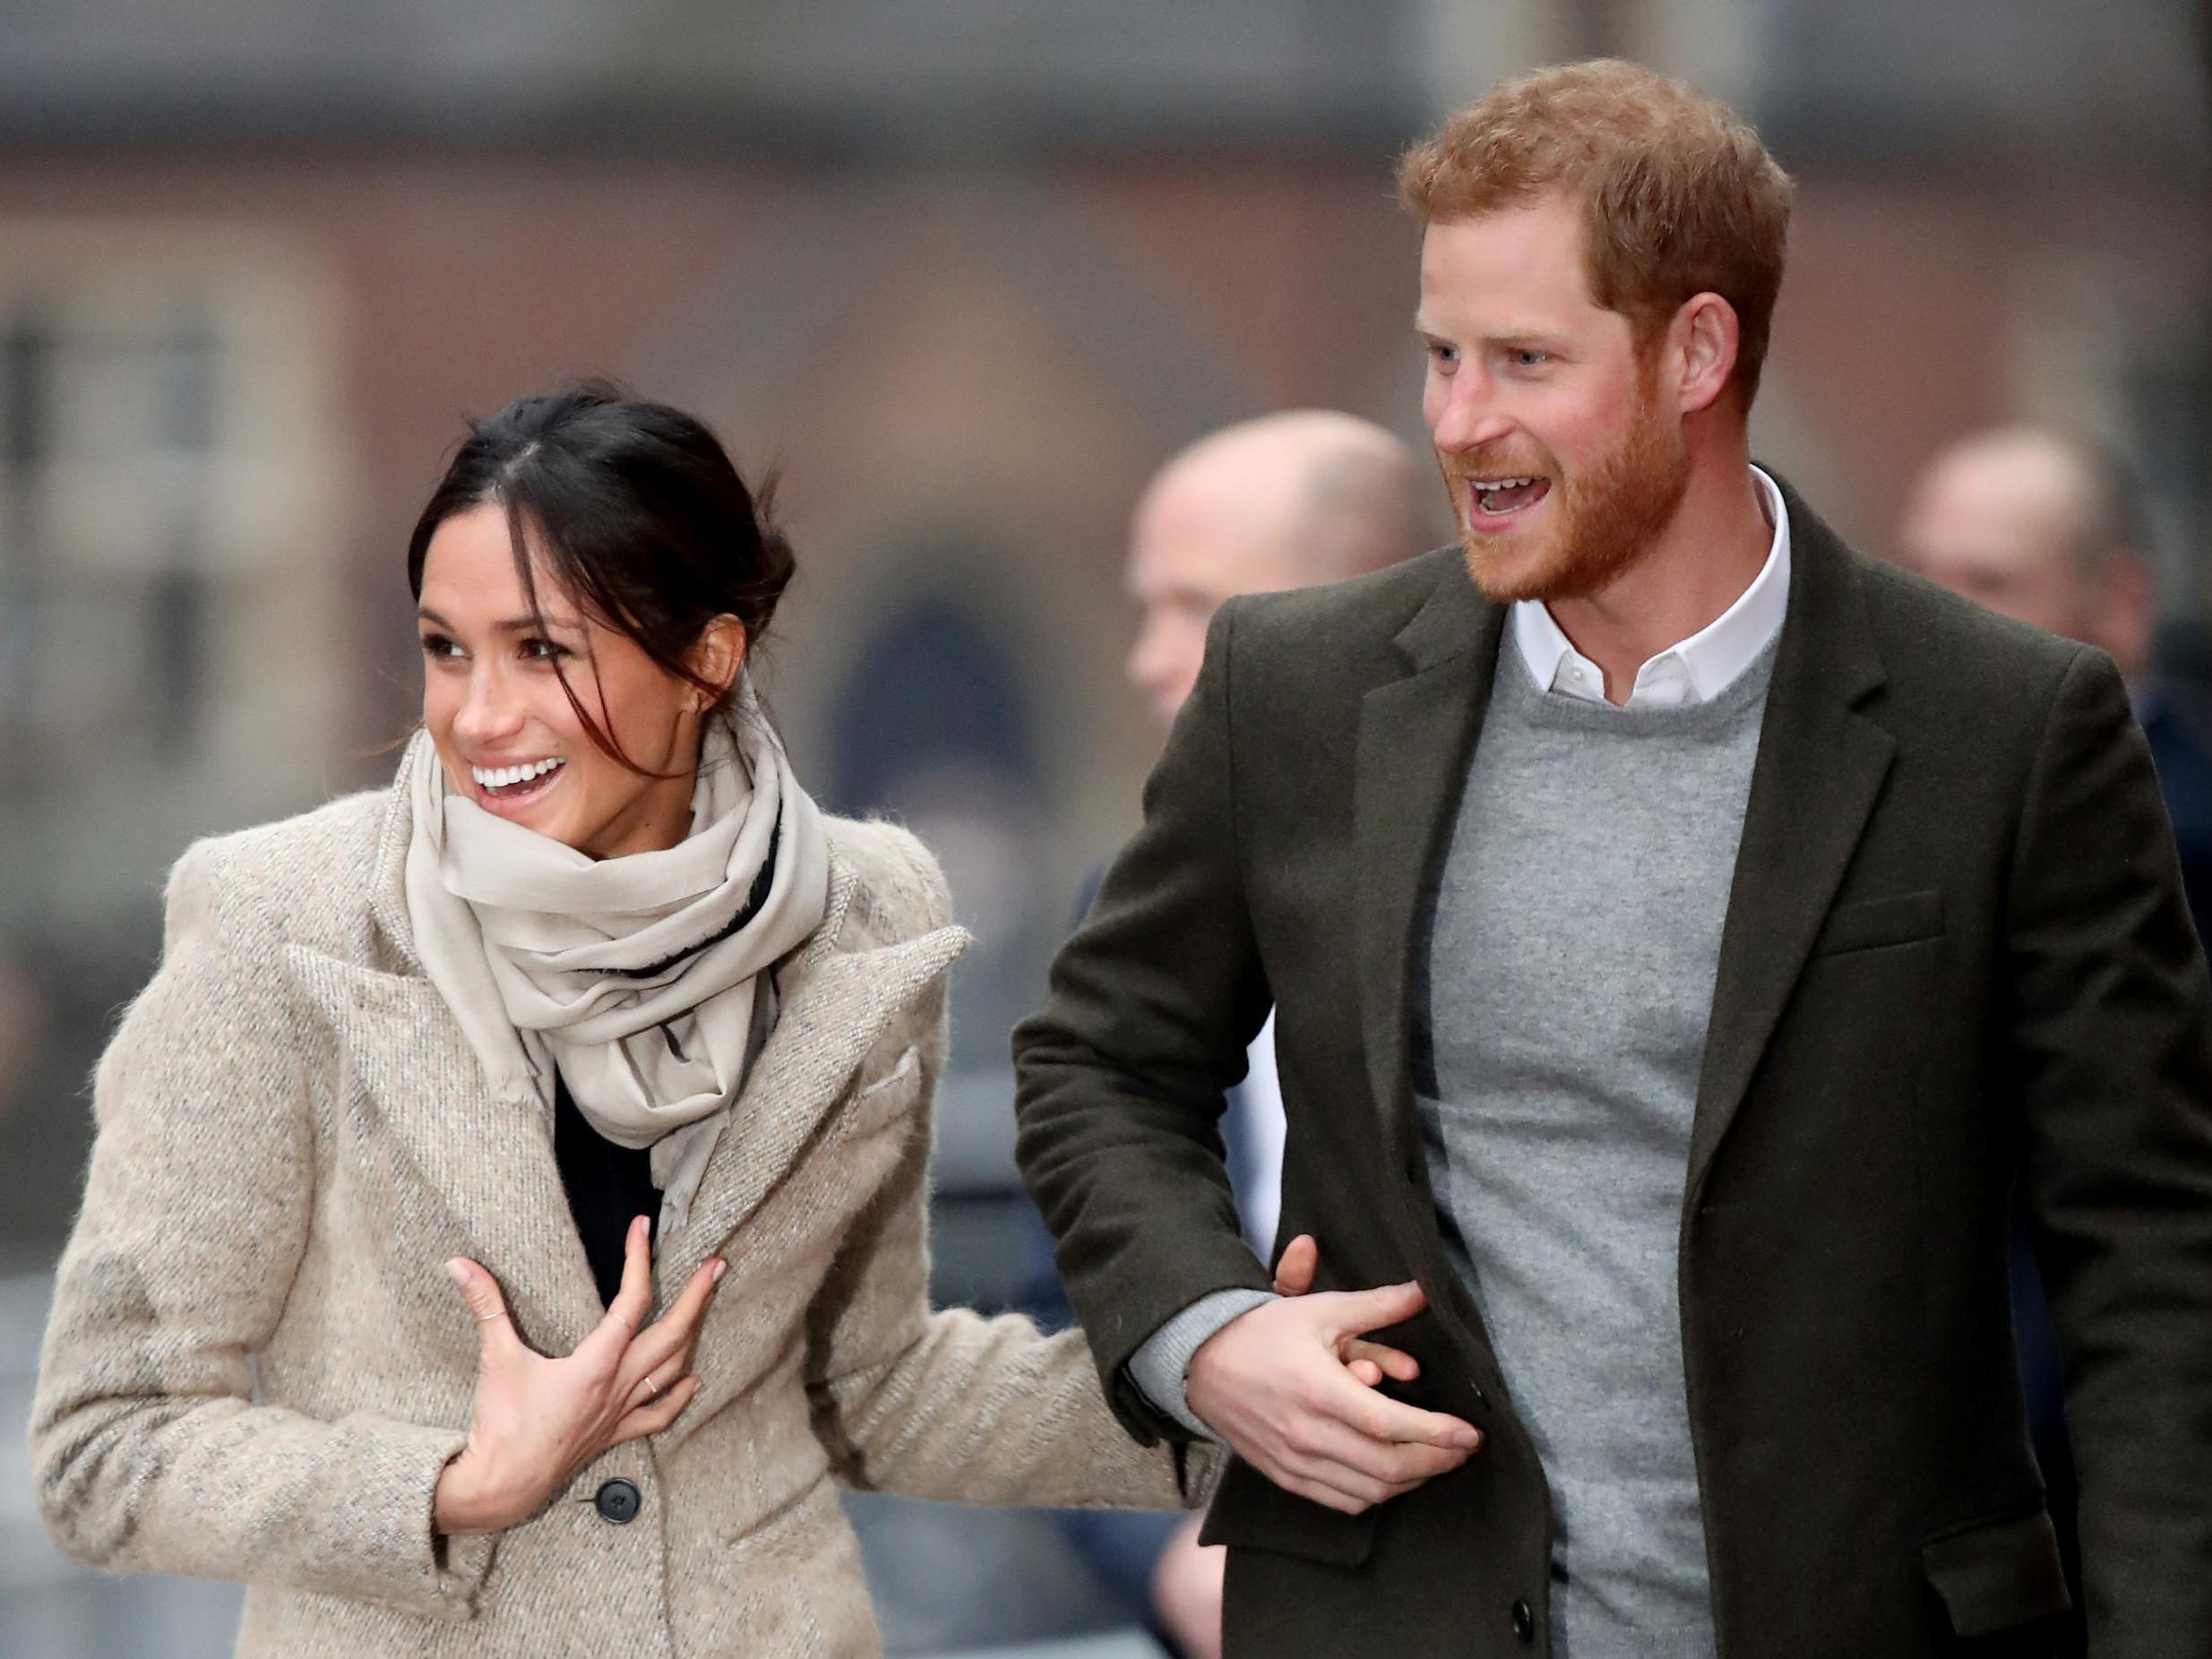 prince harry and meghan markle crash mental health charity zoom call the independent the independent prince harry and meghan markle crash